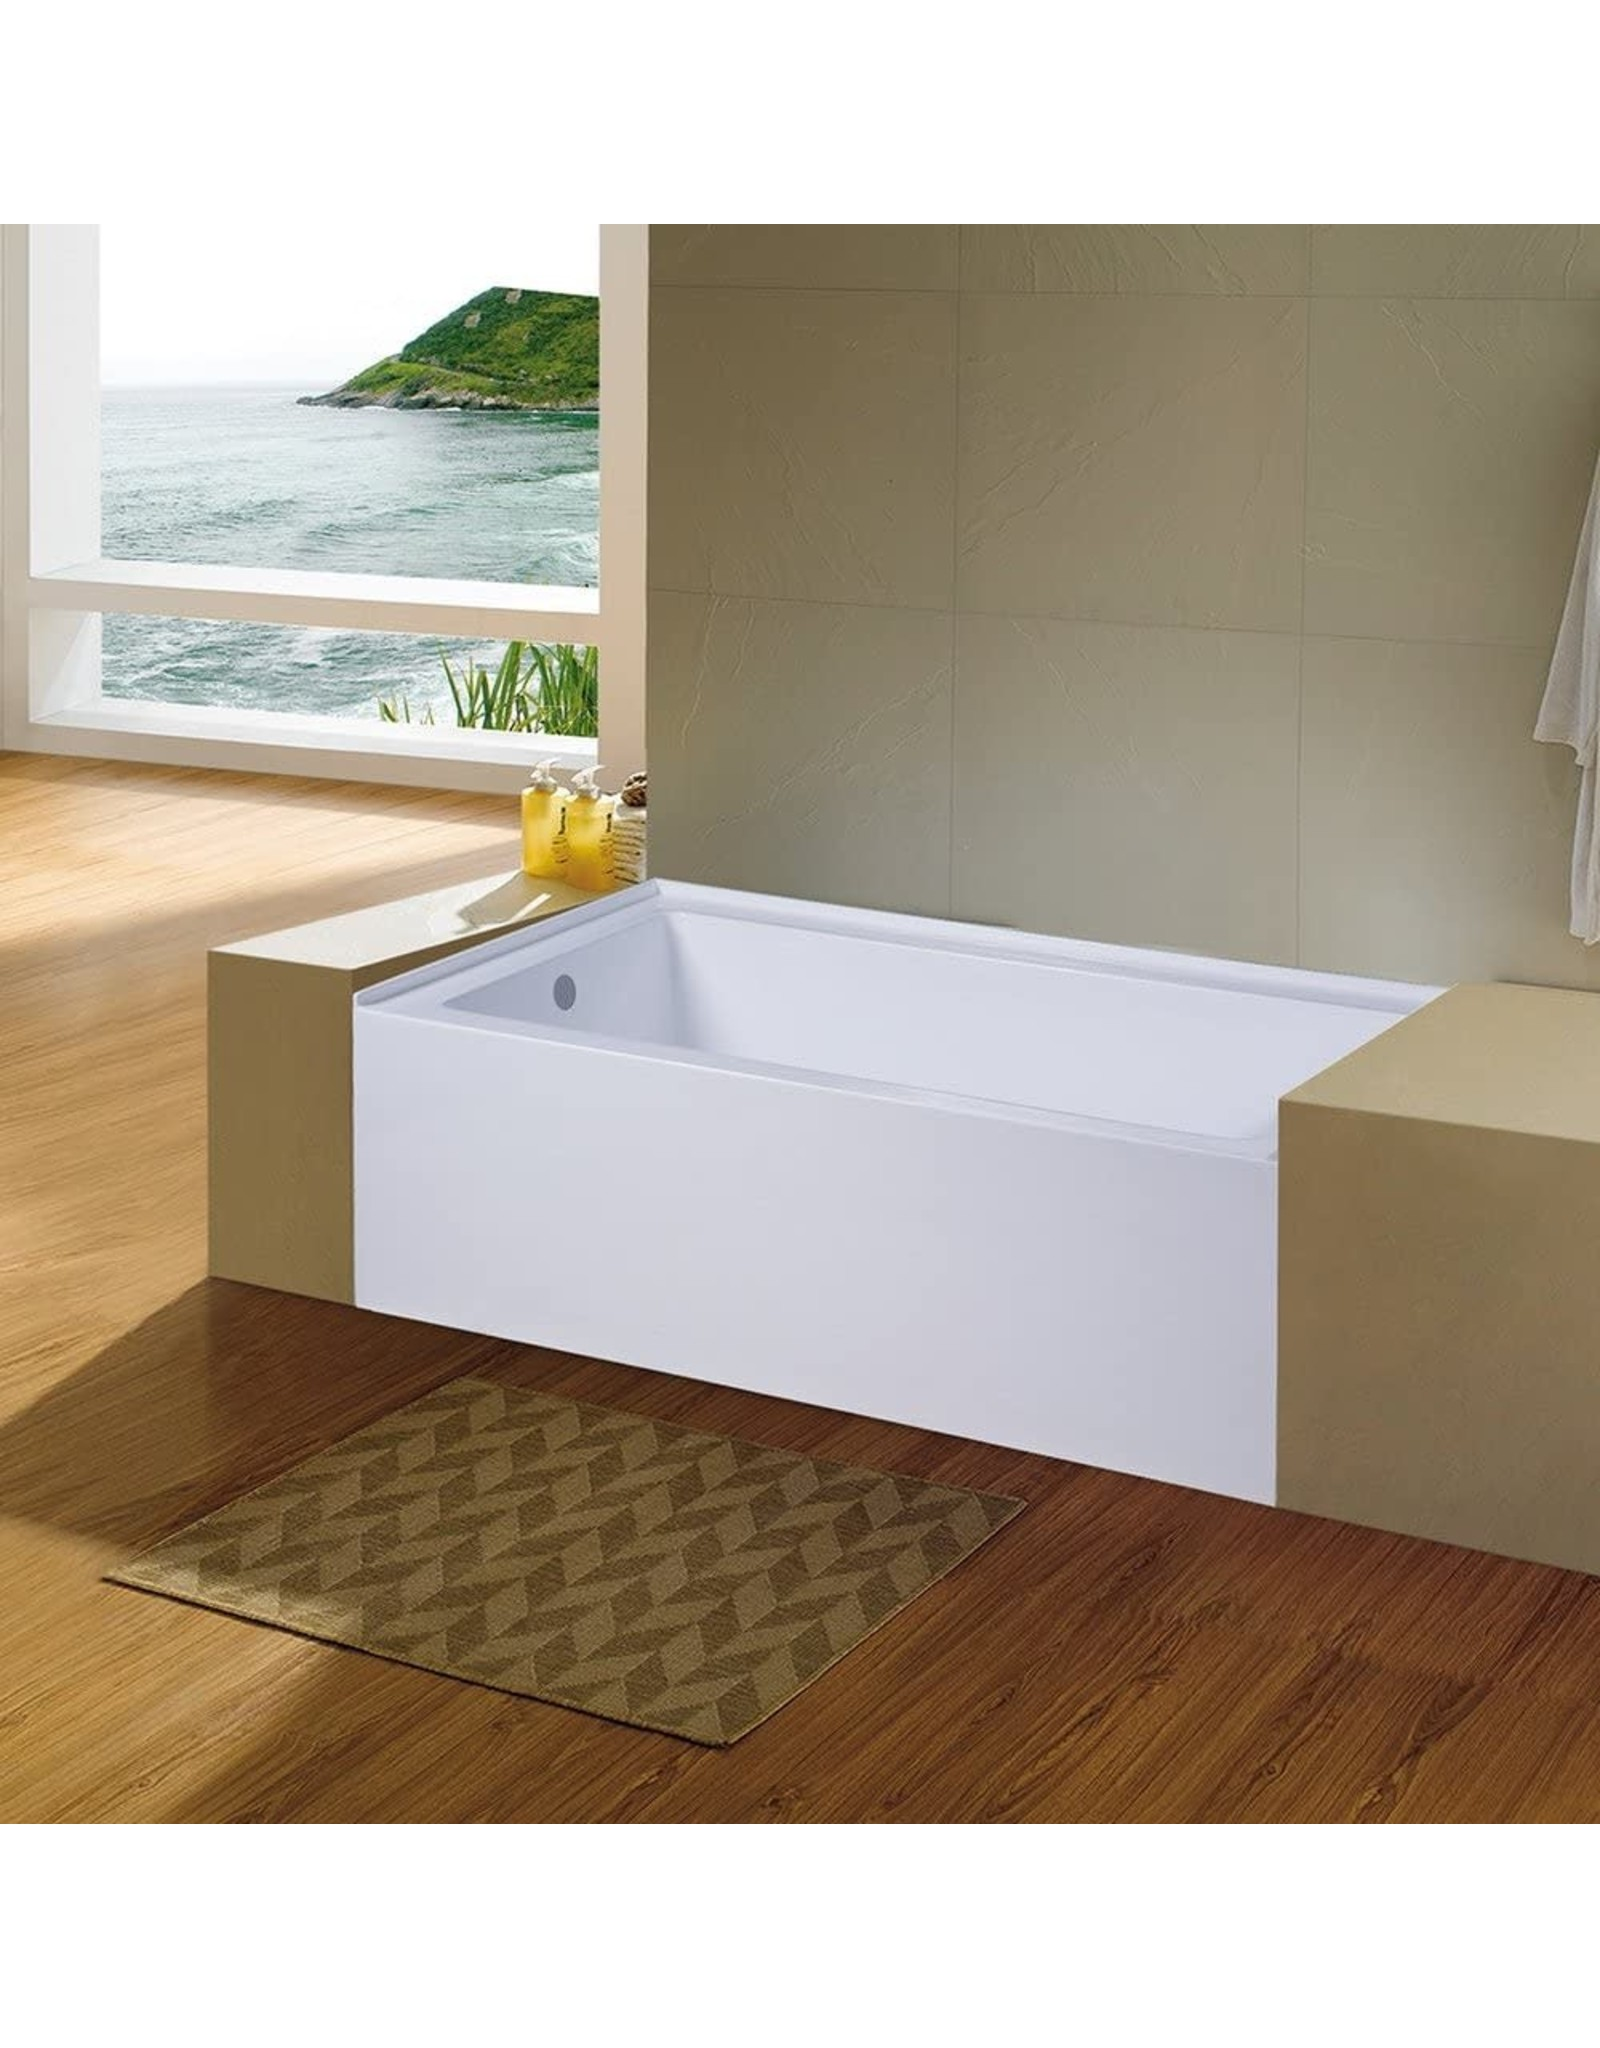 Kingston Brass KINGSTON BRASS VTDE603122L 60-Inch Contemporary Alcove Acrylic Bathtub with Left Hand Drain and Overflow Holes, White